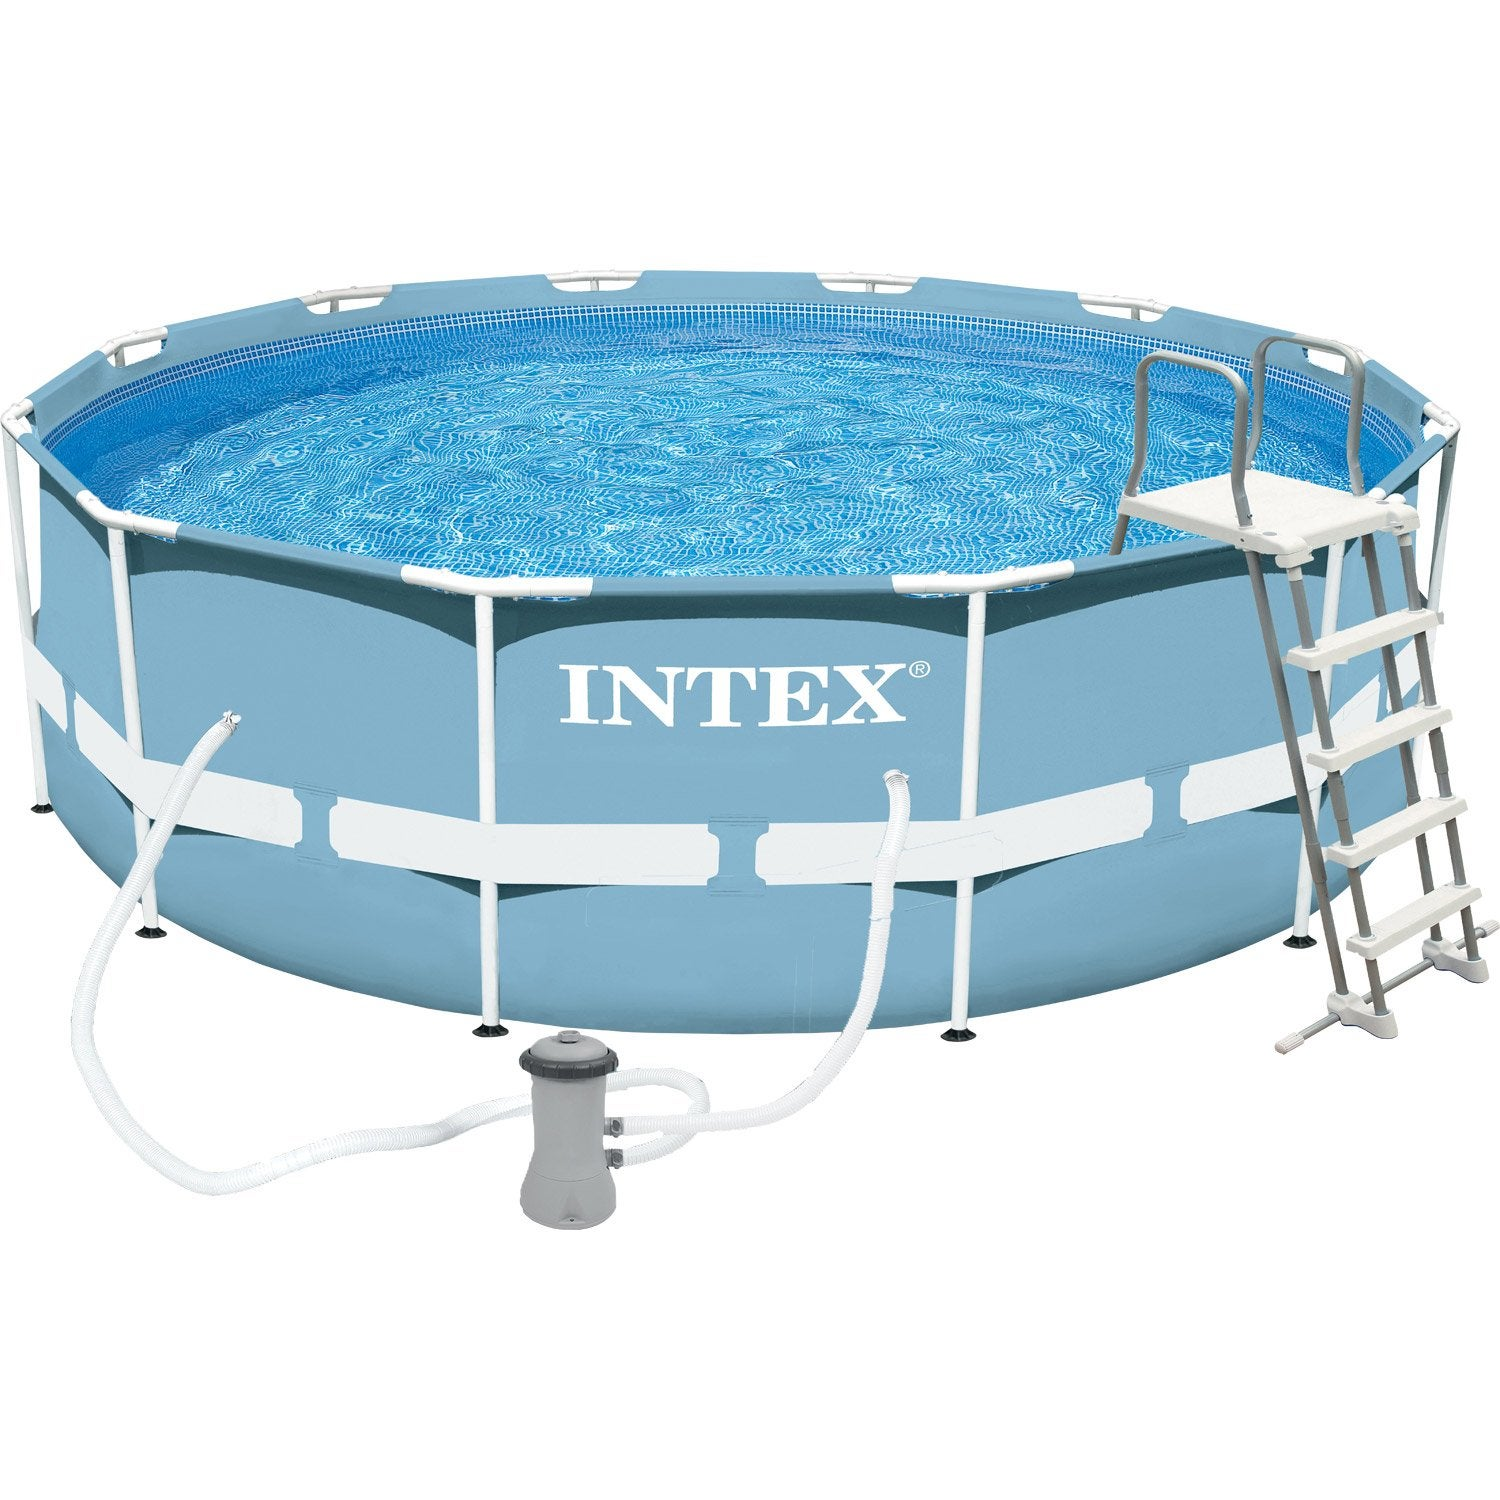 Piscine hors sol autoportante tubulaire prism frame intex for Piscine hors sol intex ronde